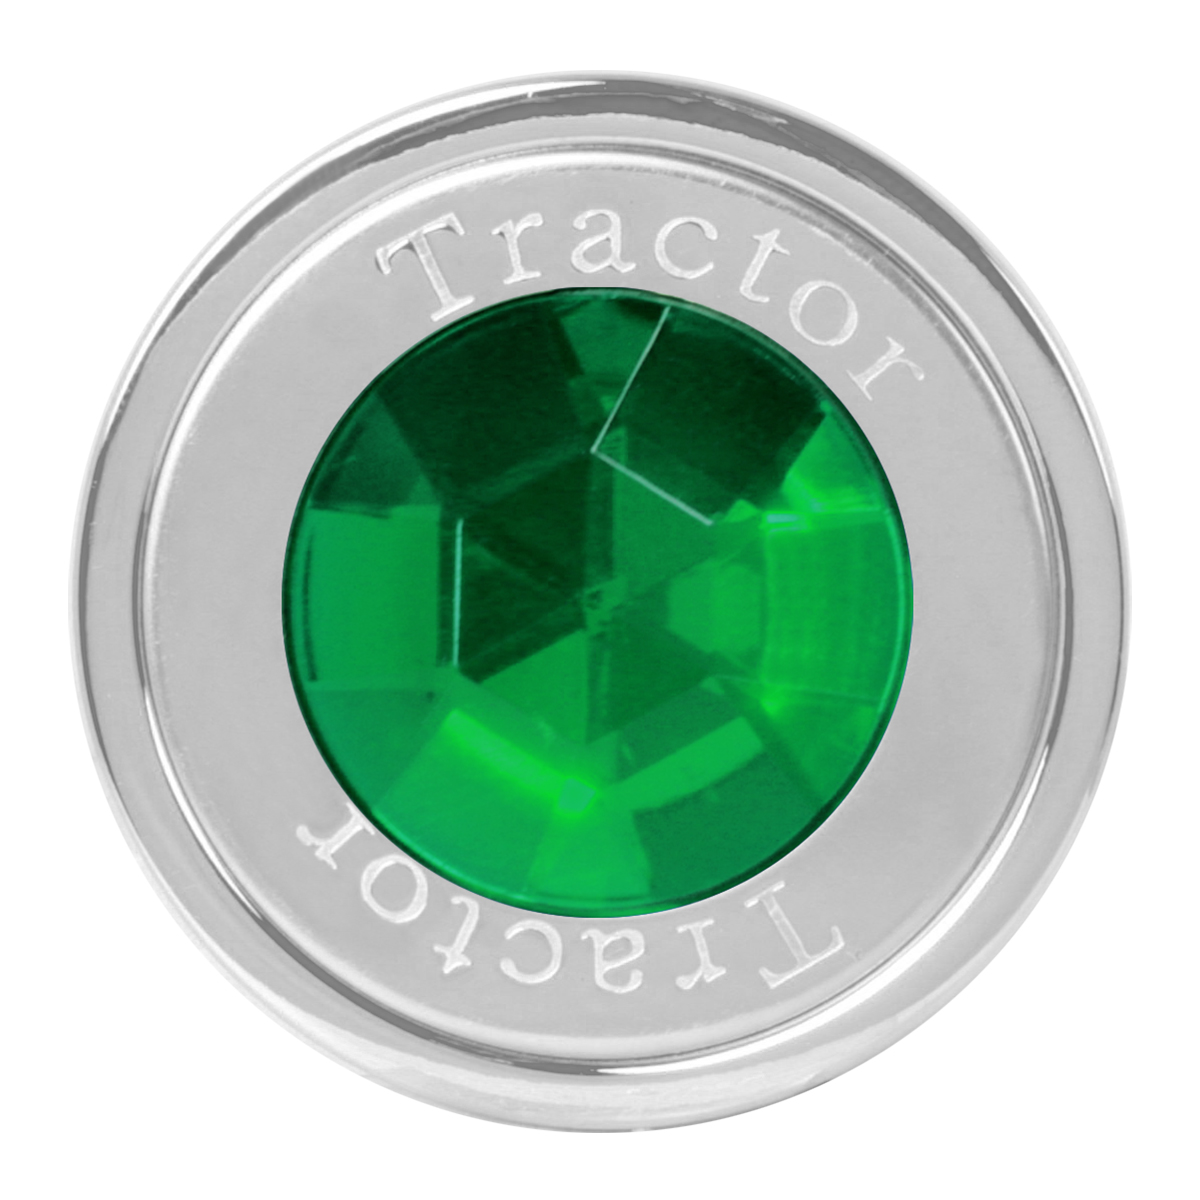 95833 Tractor Air Control Knob w/ Green Crystal